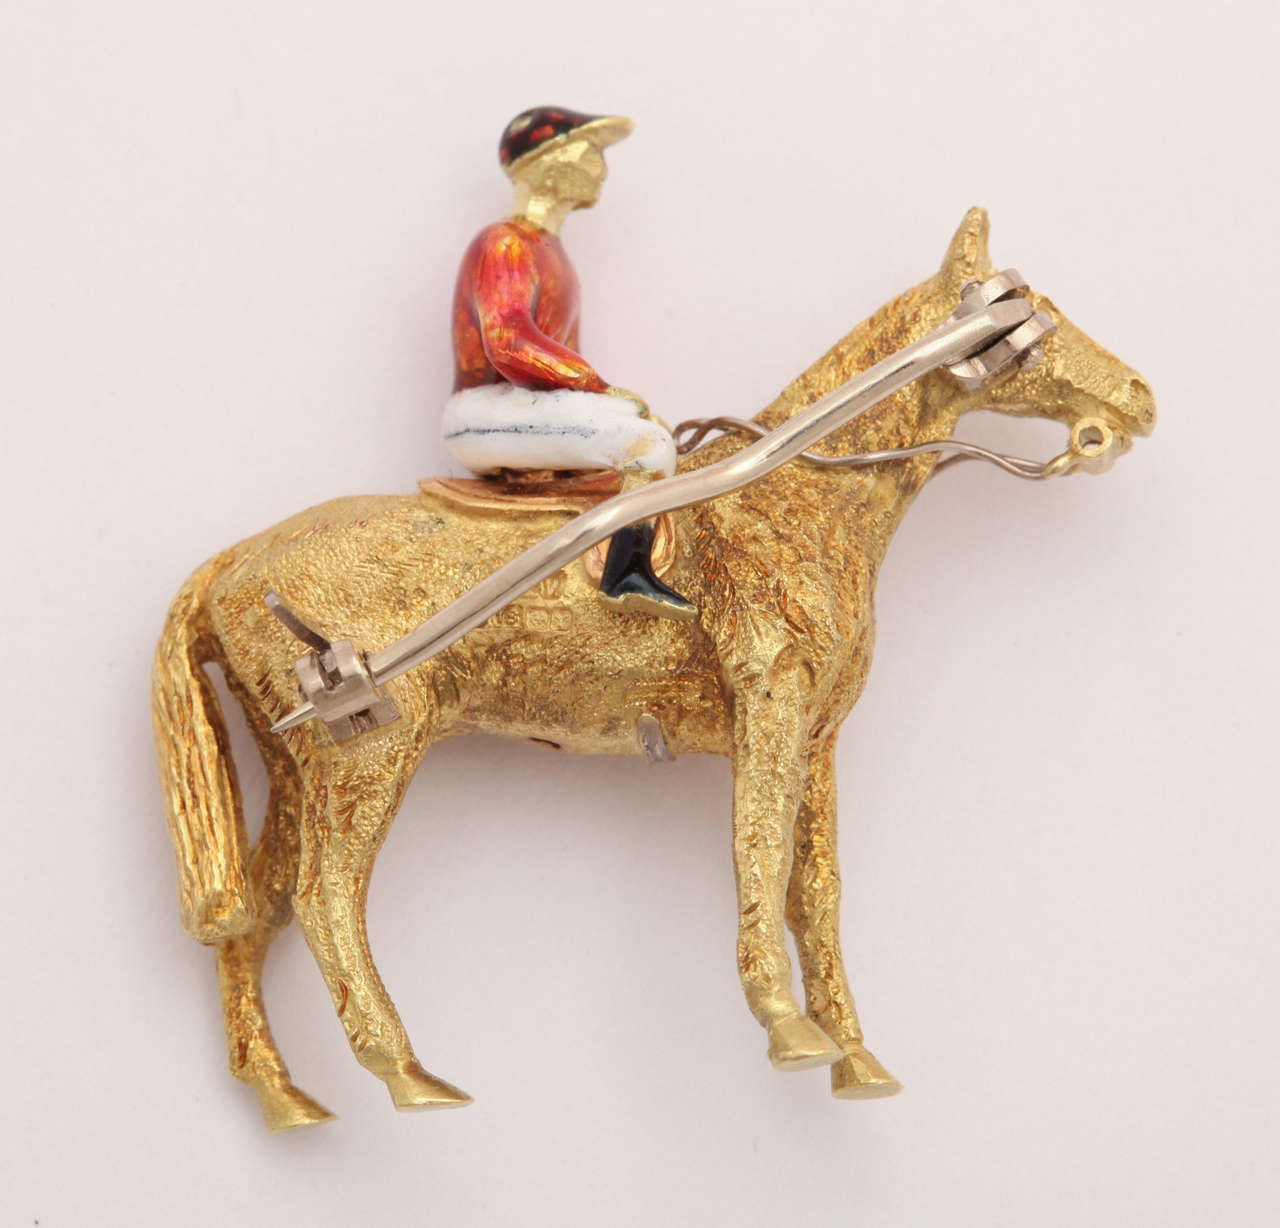 From Great Britain and one of the finest enamel workers in London comes a textured 18 kt and enamel horse and jockey pin. It is a remarkably crafted small sculpture that is three dimensional and stands on all fours. The form of the animal and the